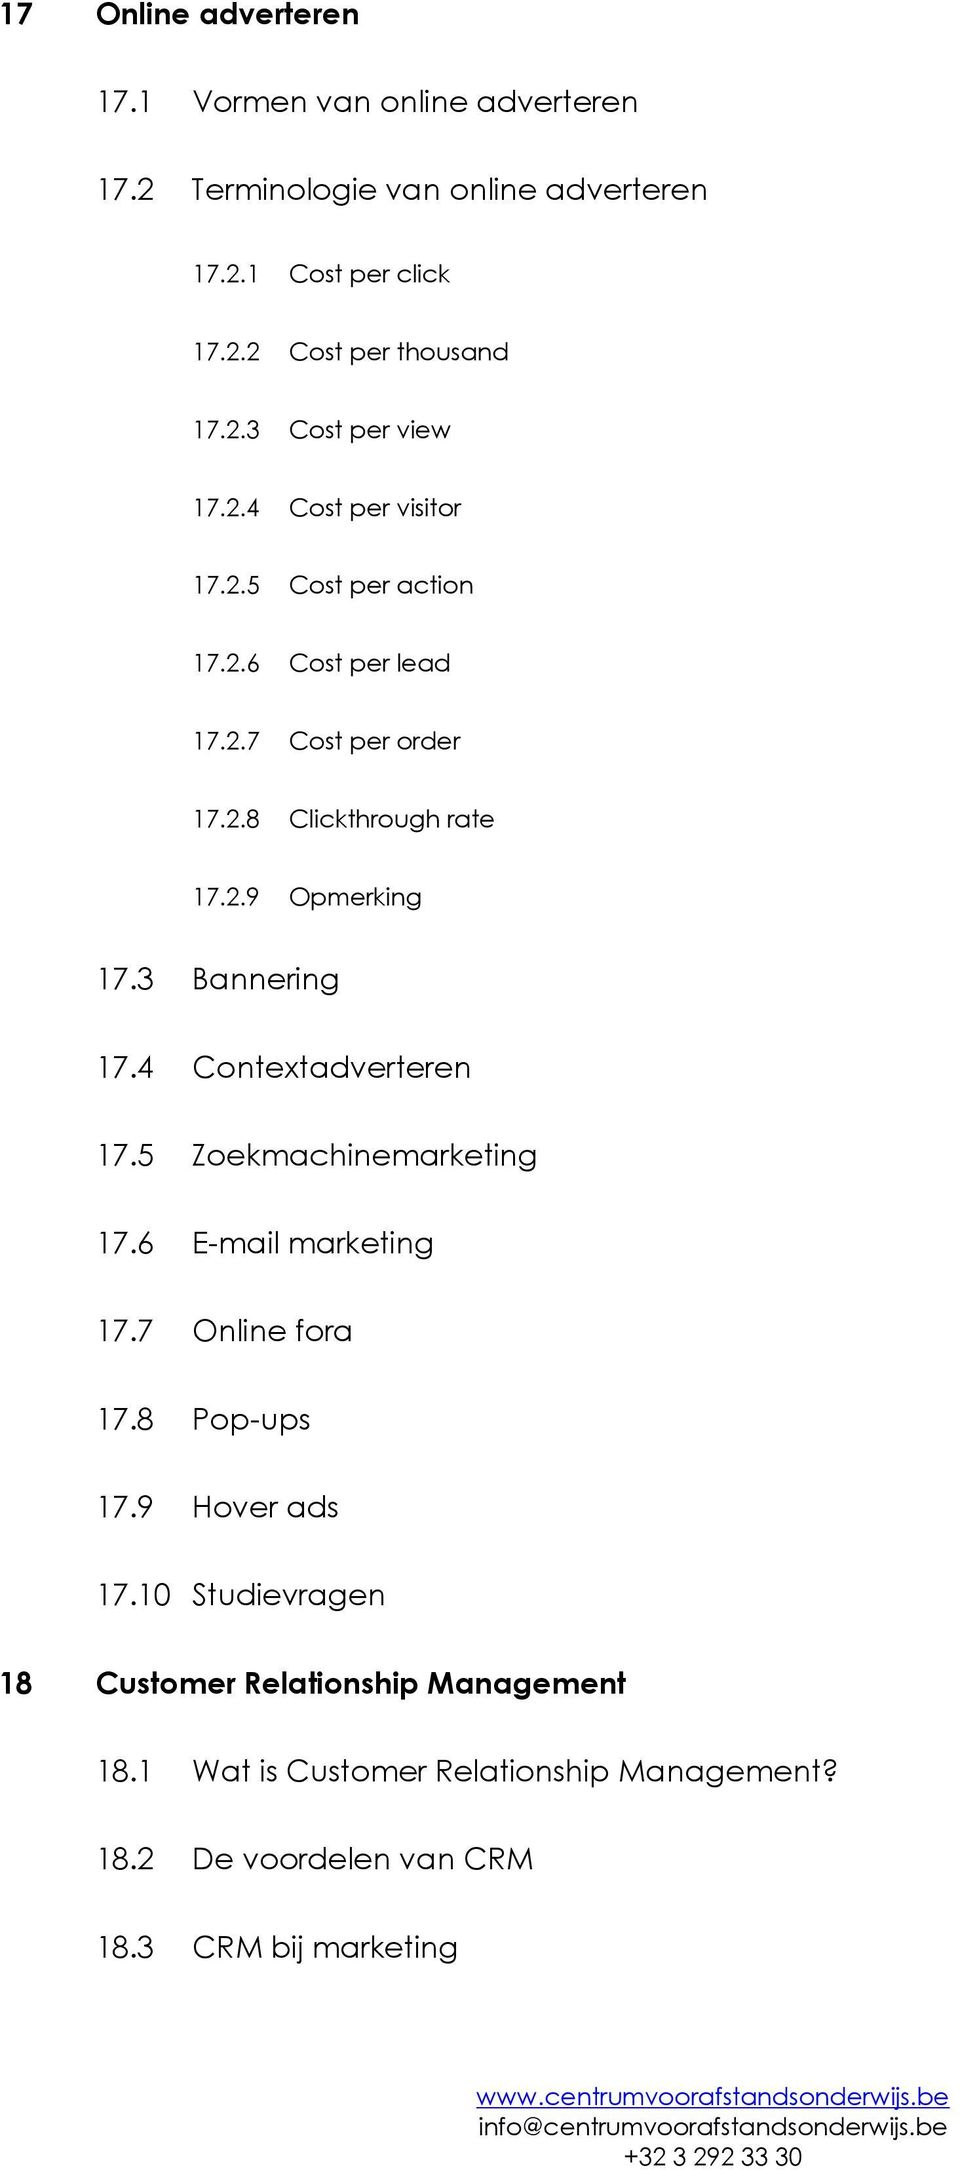 3 Bannering 17.4 Contextadverteren 17.5 Zoekmachinemarketing 17.6 E-mail marketing 17.7 Online fora 17.8 Pop-ups 17.9 Hover ads 17.